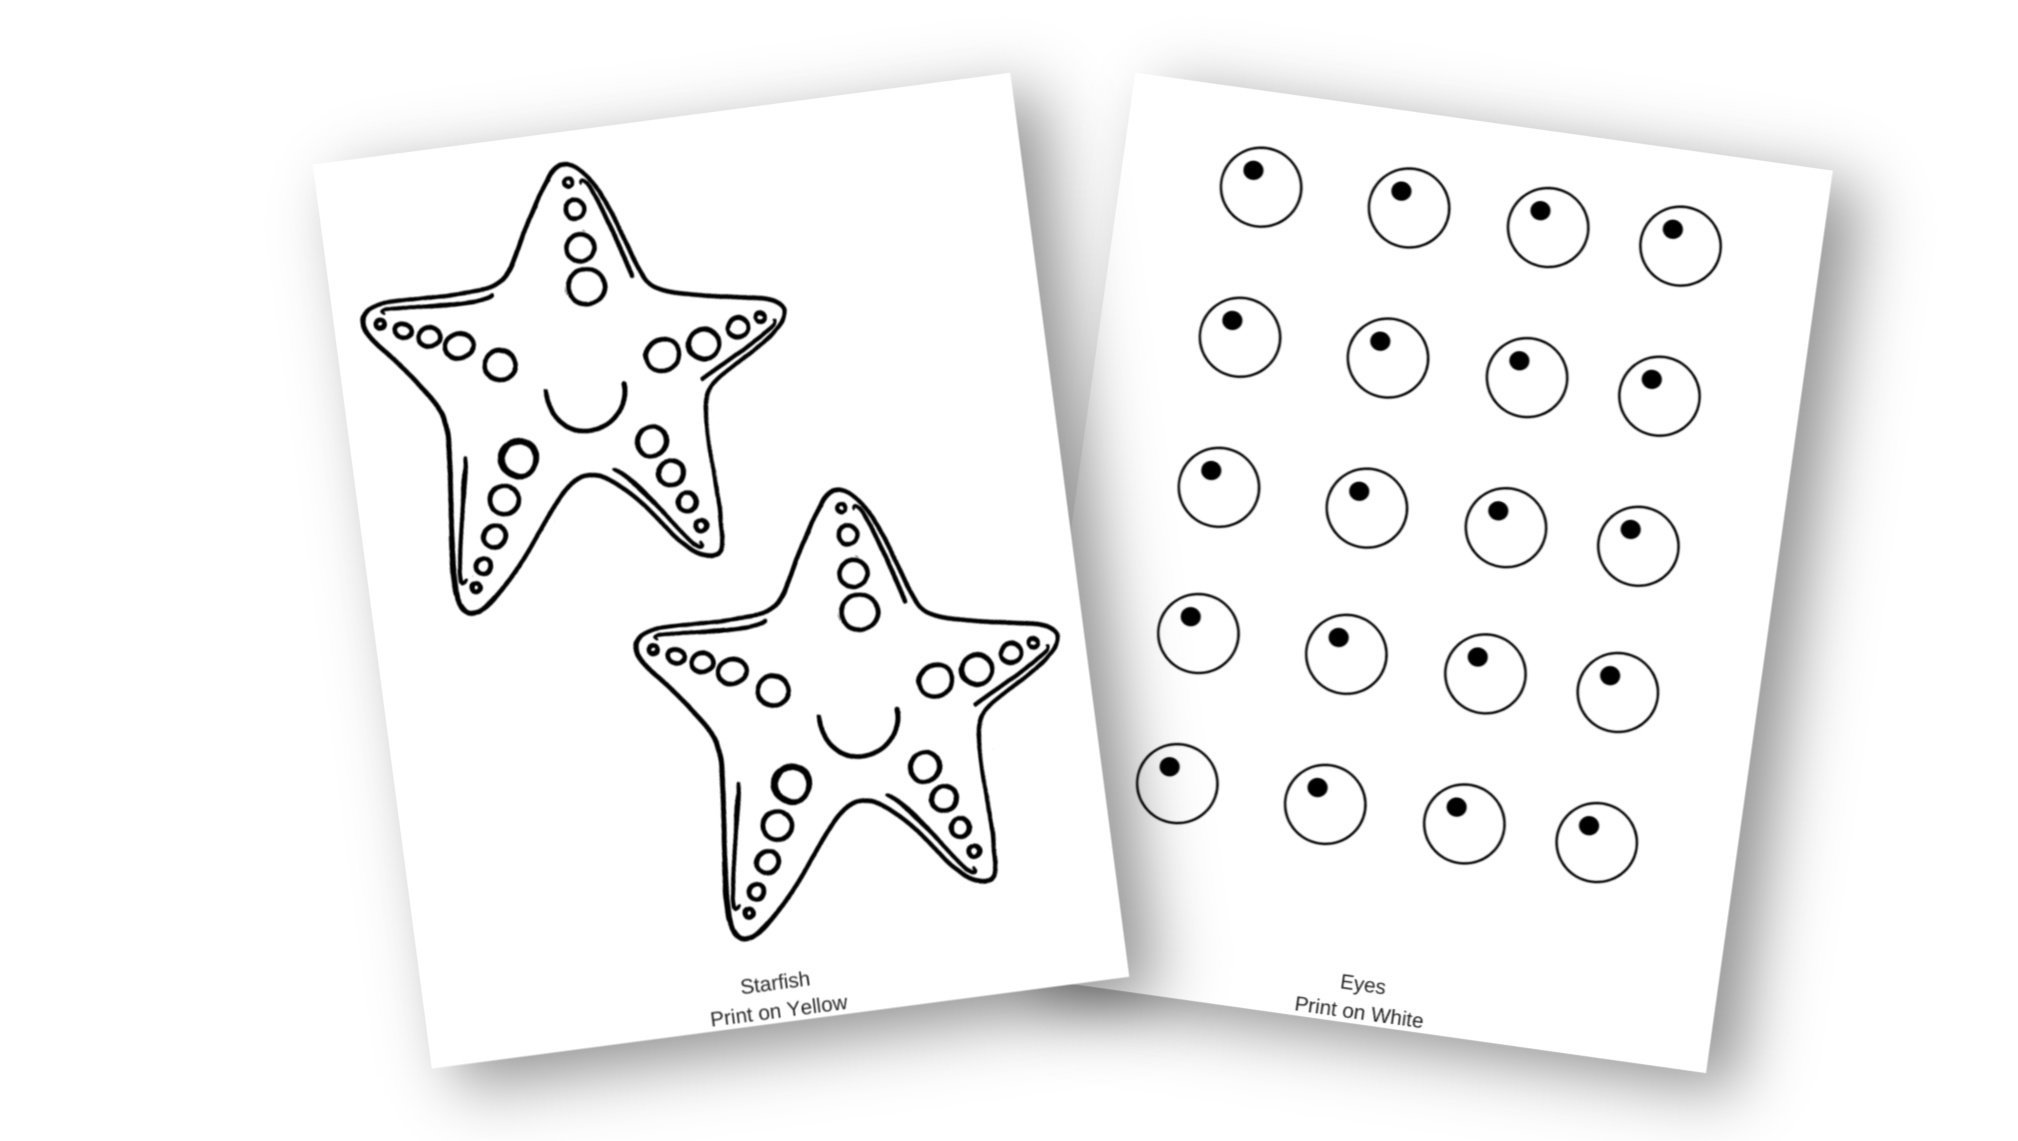 Easy Diy Starfish Craft For Kids With Free Template